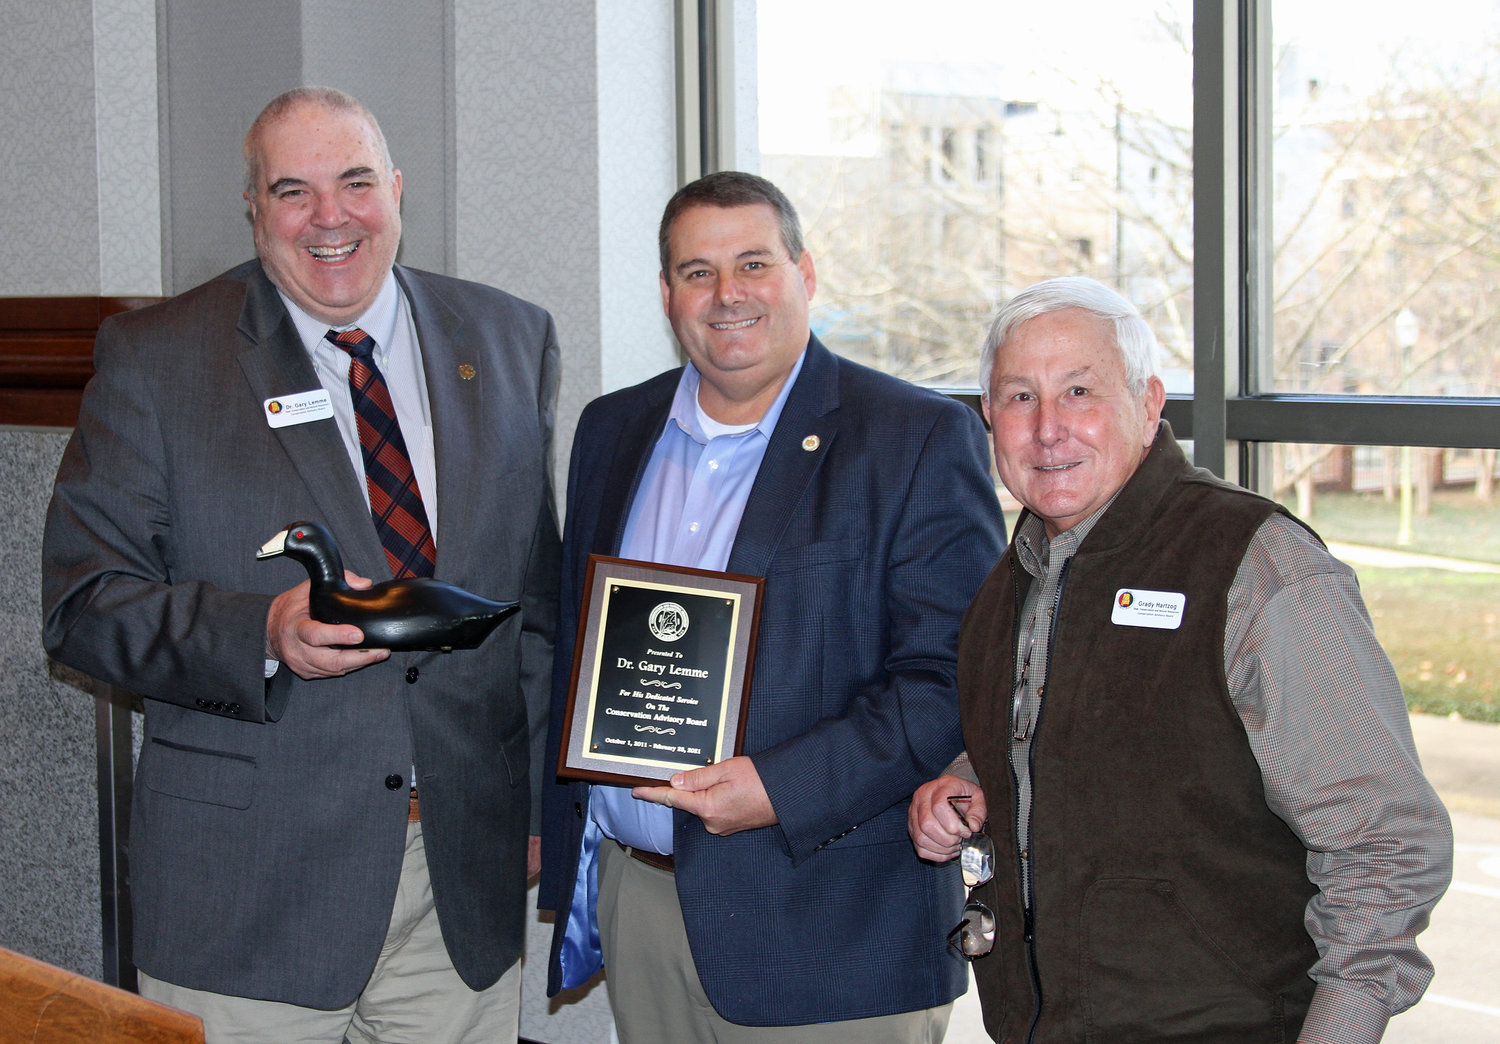 Dr. Gary Lemme, left, was recognized for his service on the Alabama Conservation Advisory Board by Conservation Commissioner Chris Blankenship and Grady Hartzog, right.